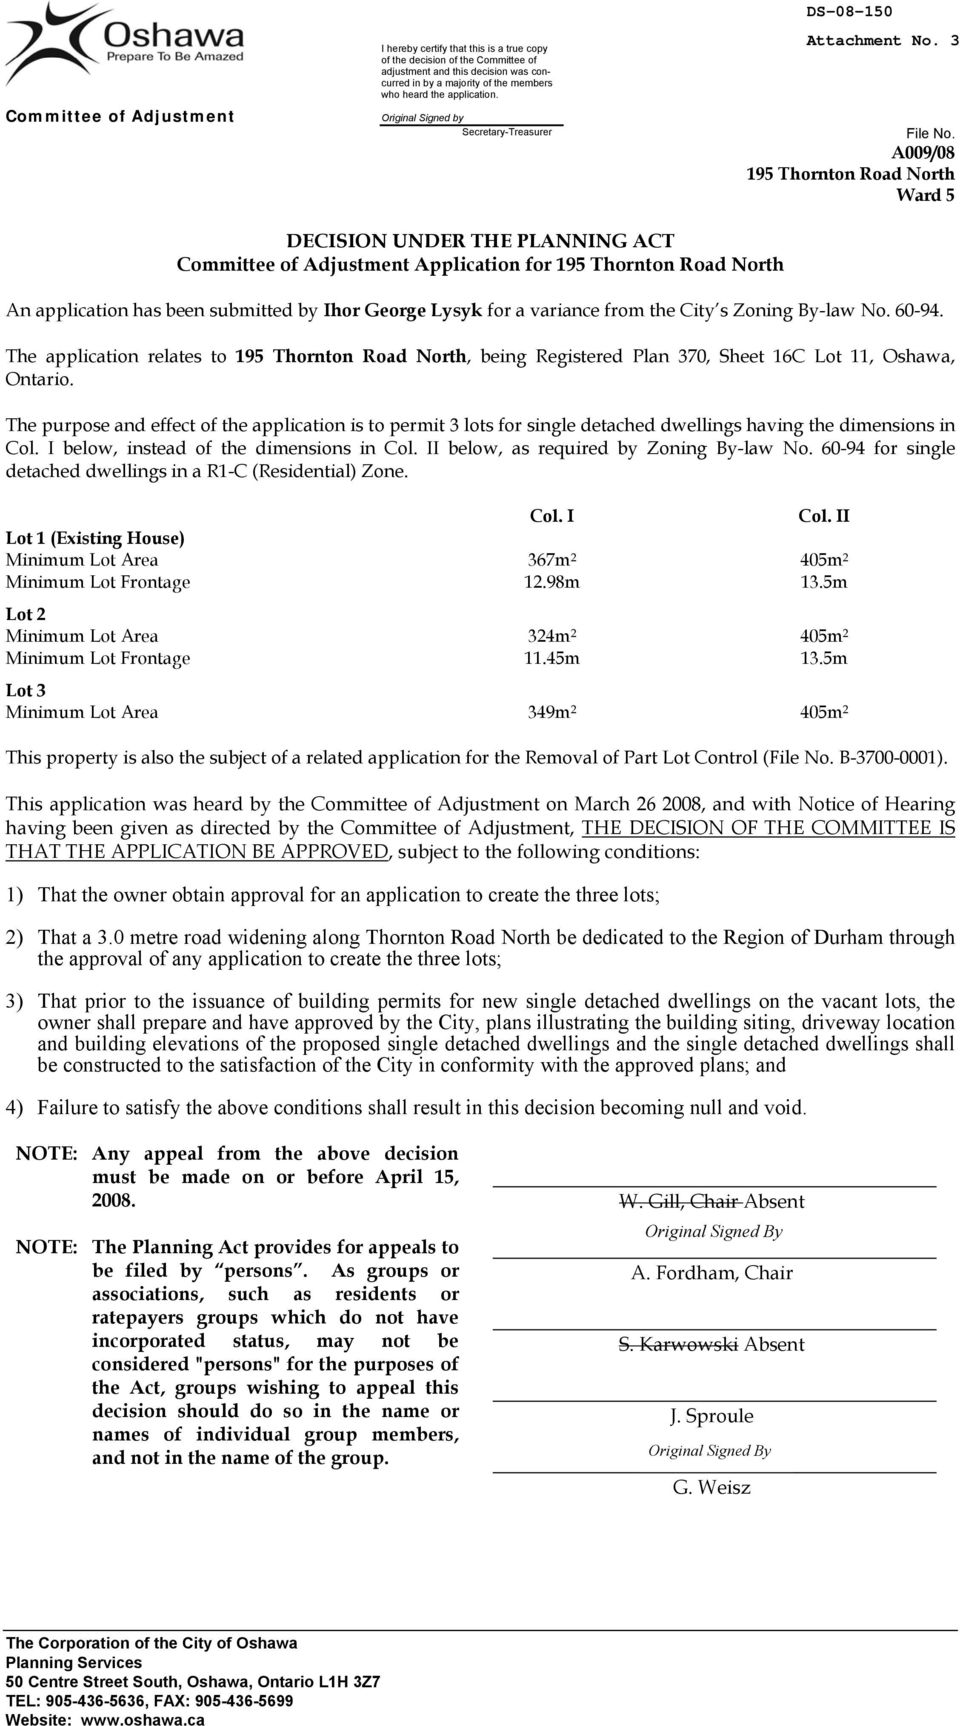 variance from the City s Zoning By-law No. 60-94. The application relates to 195 Thornton Road North, being Registered Plan 370, Sheet 16C Lot 11, Oshawa, Ontario.